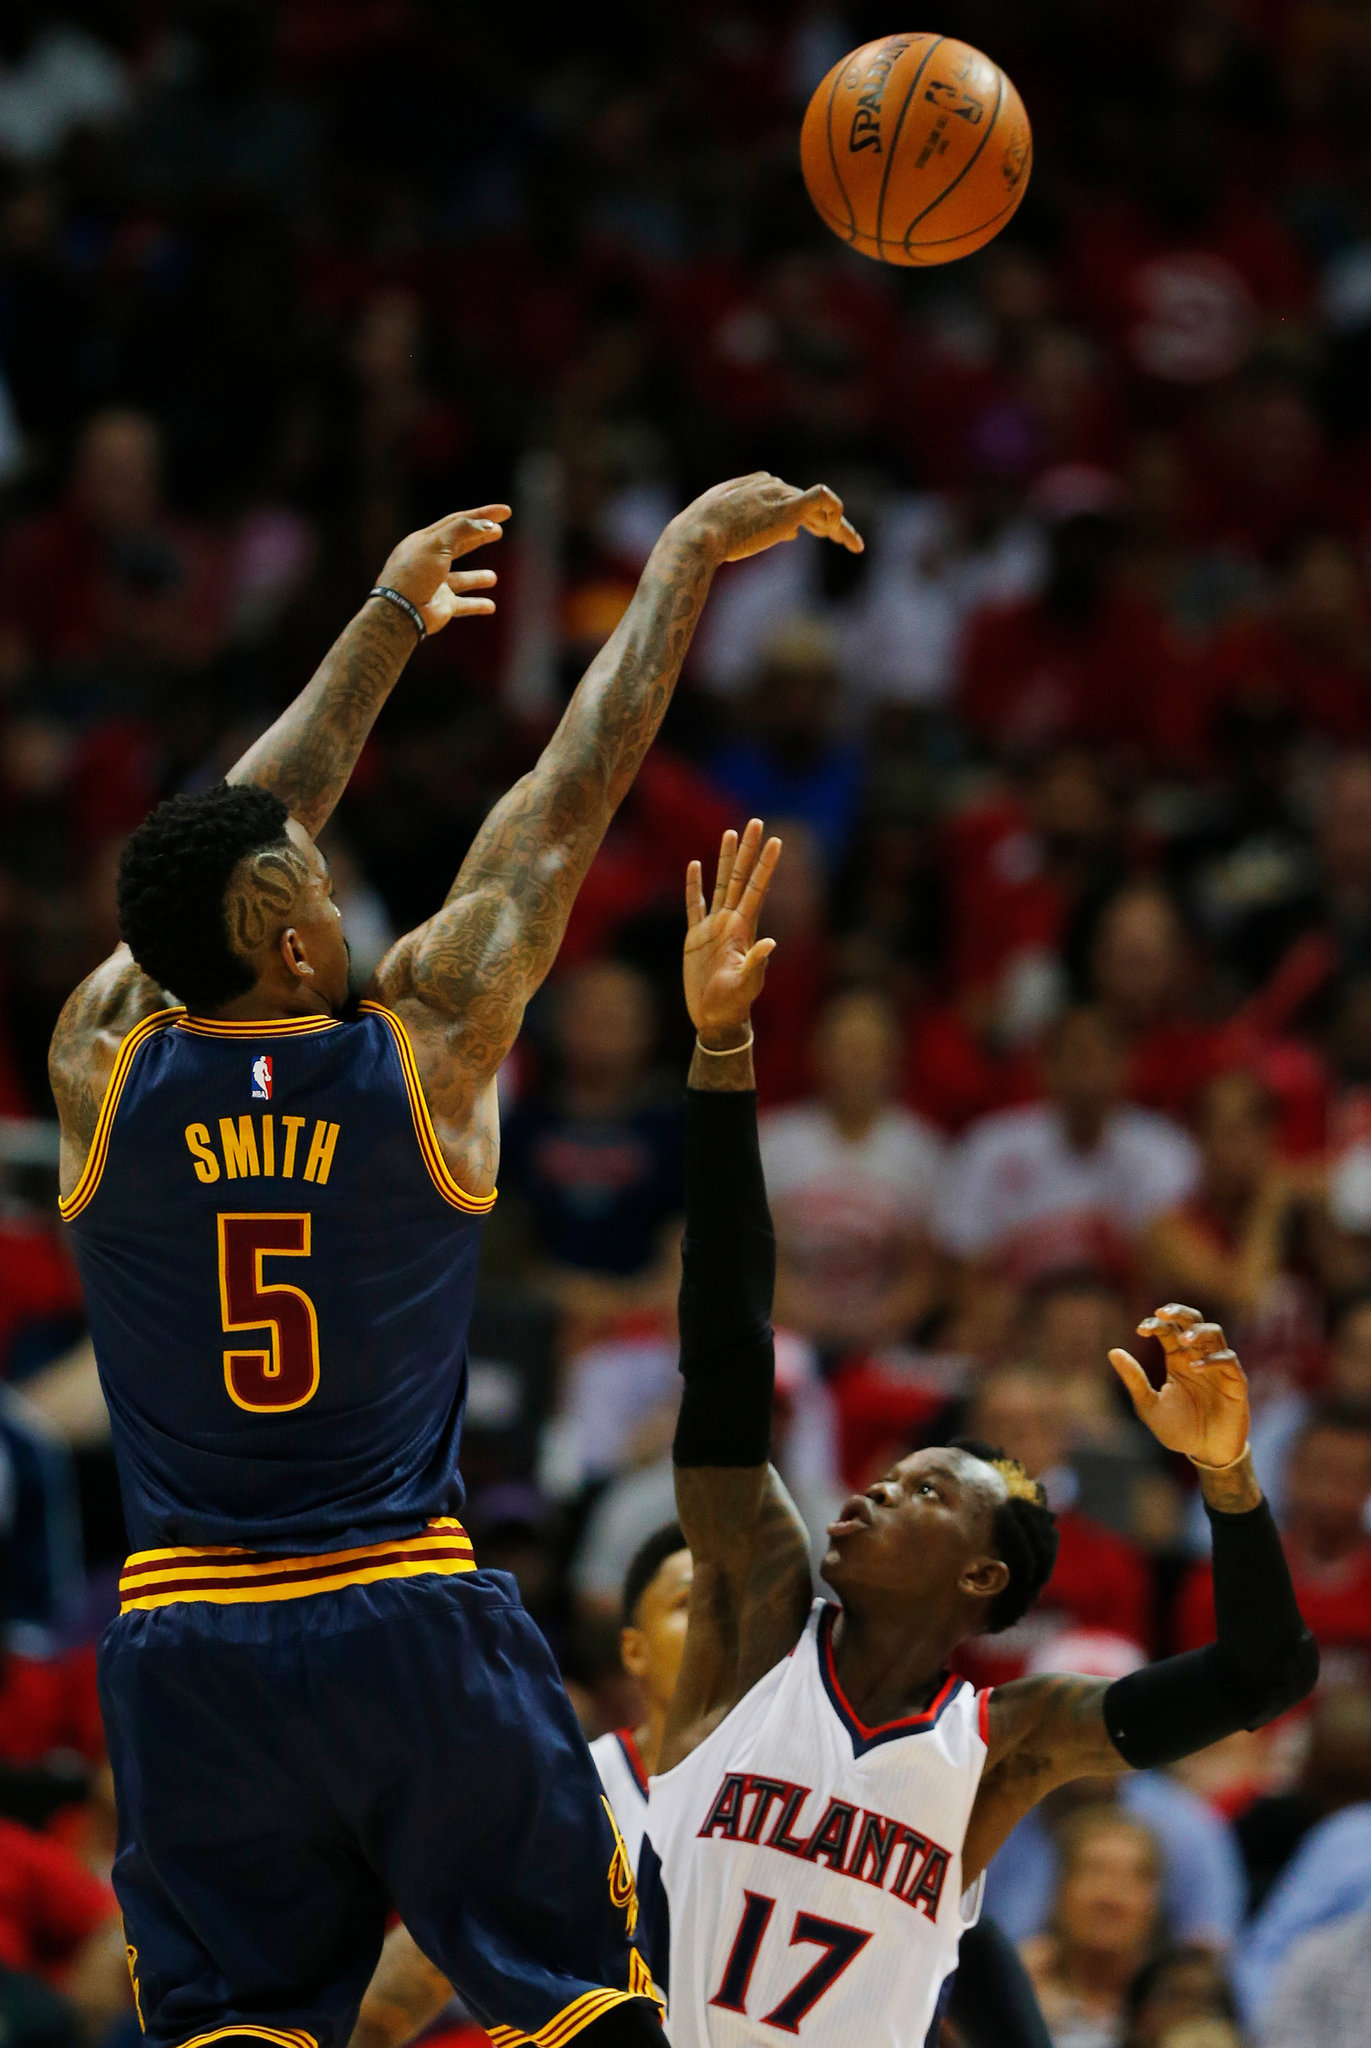 J.R. Smith - Eastern Conference Finals Game 1 5.20.2015